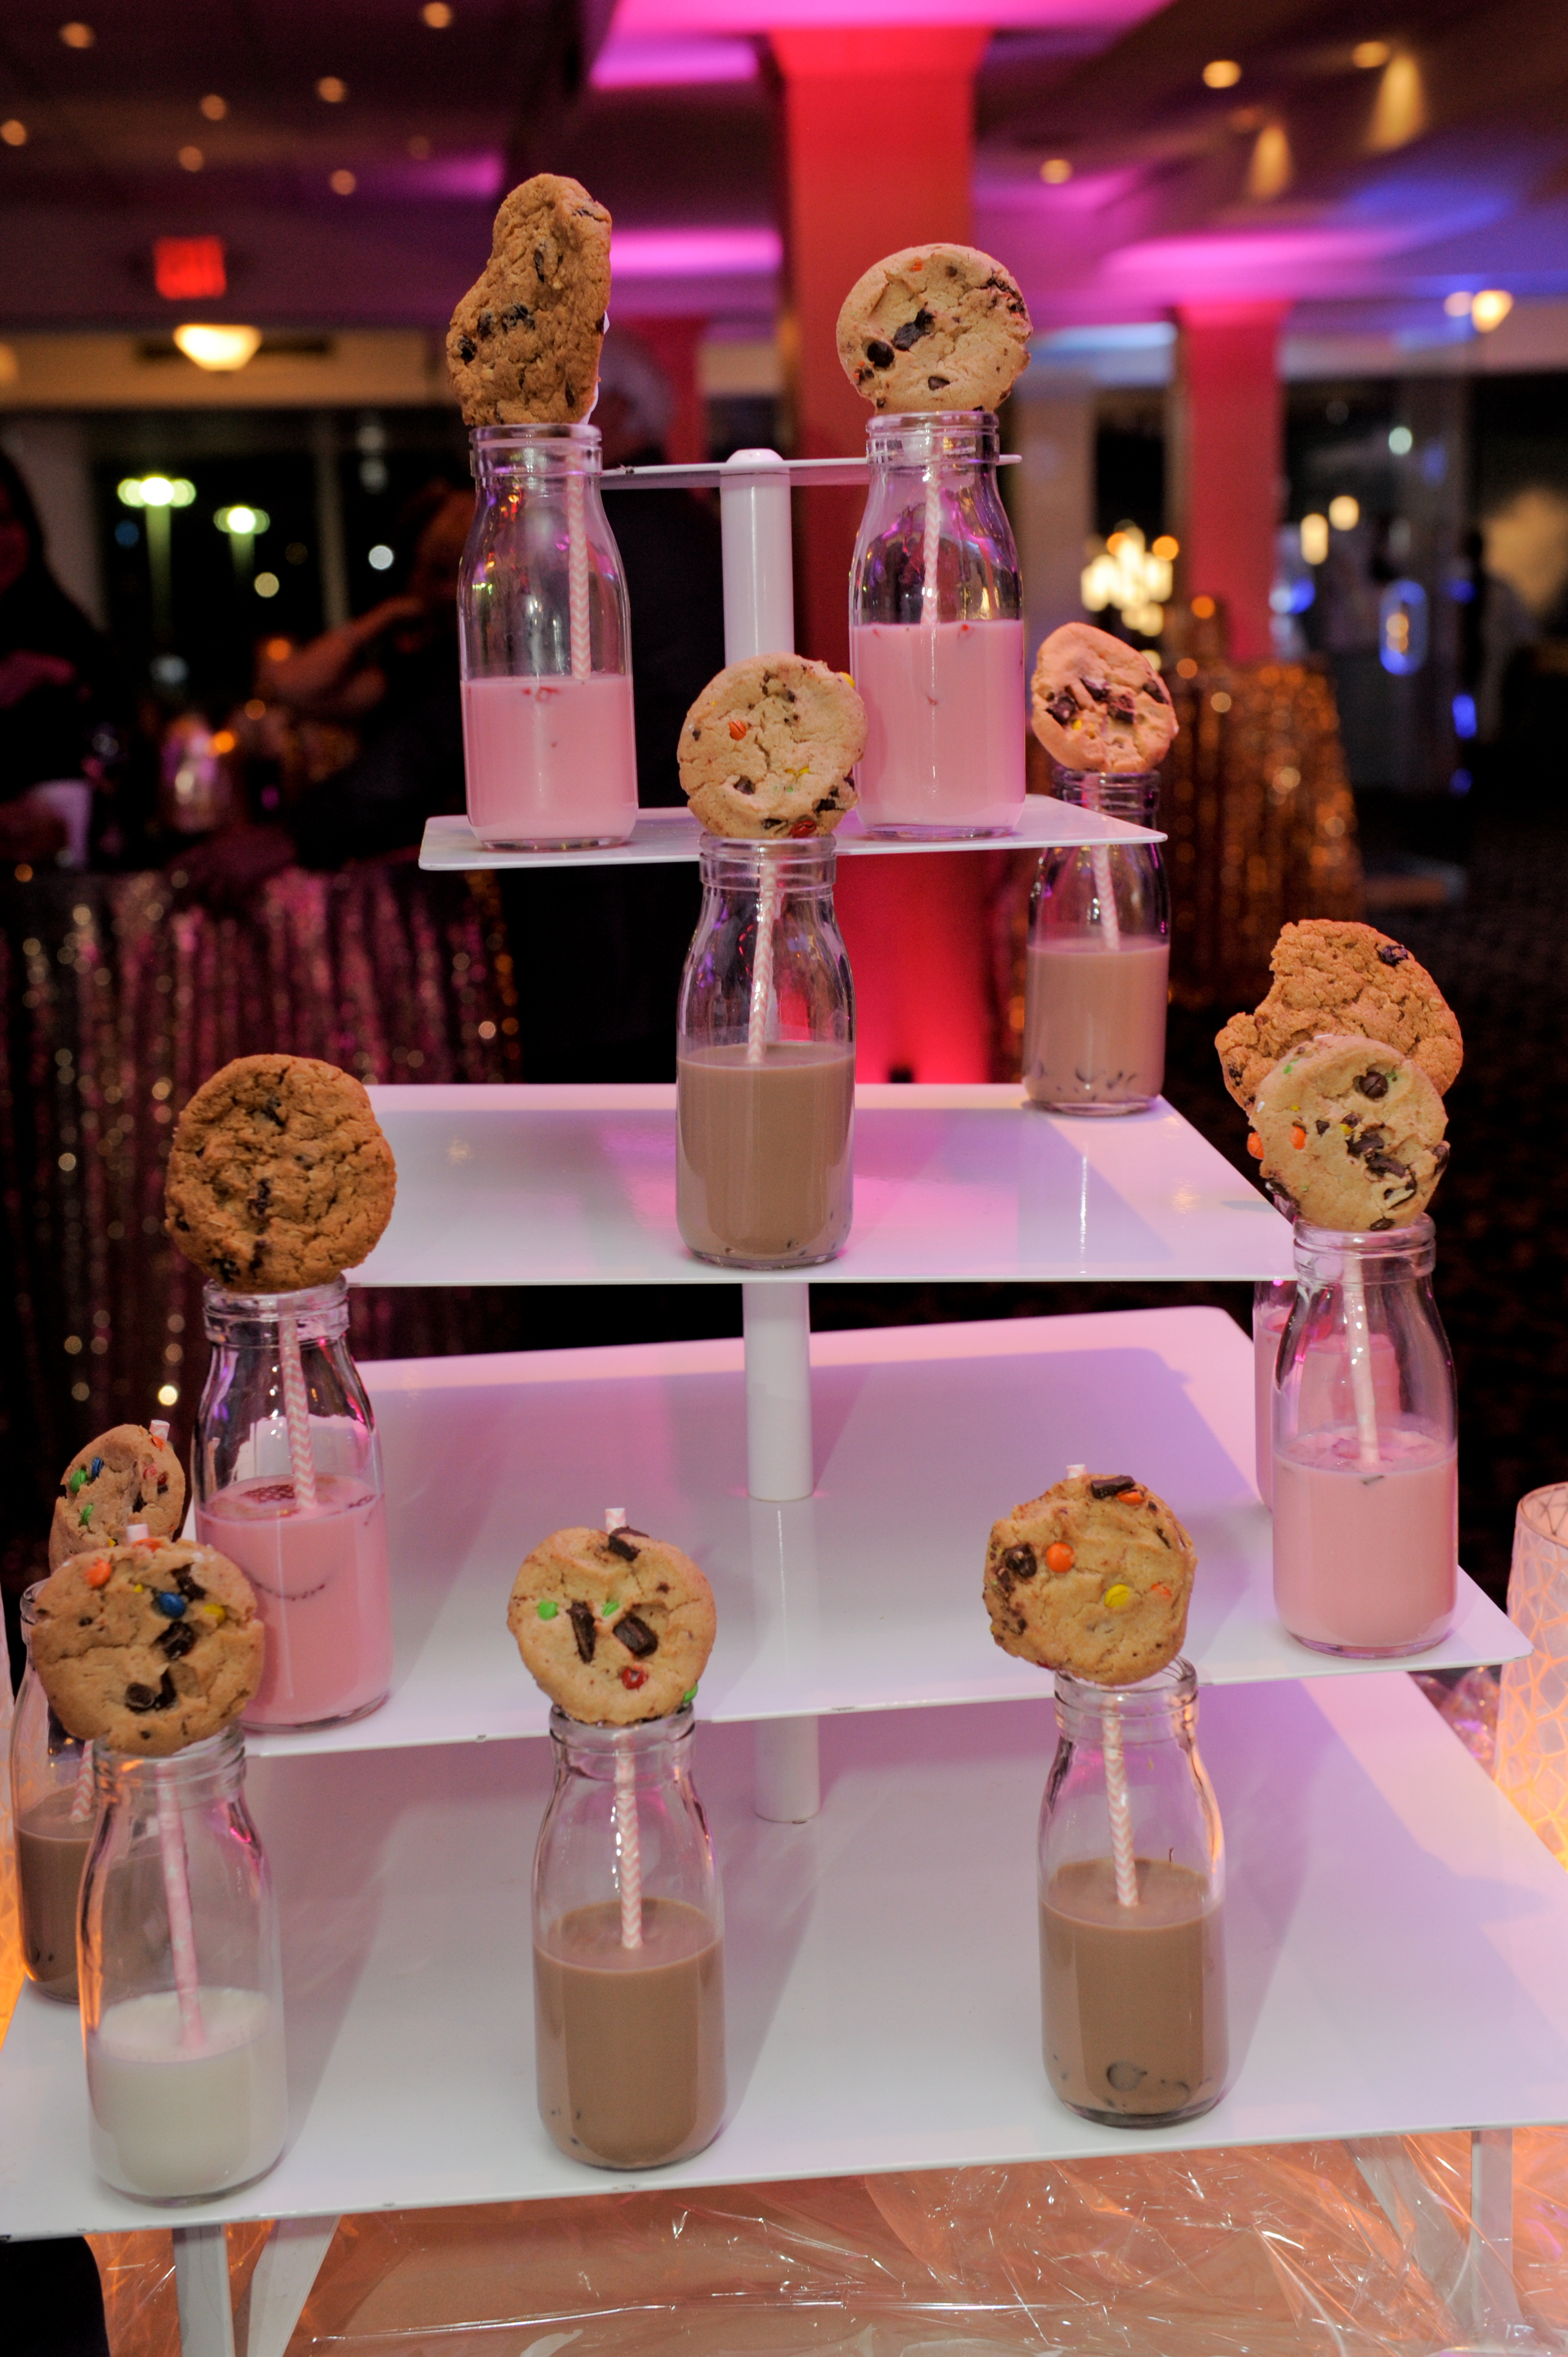 Cookies and milk were the desert at the Roostertail wedding venue downtown Detroit. Photos by Marci Curtis